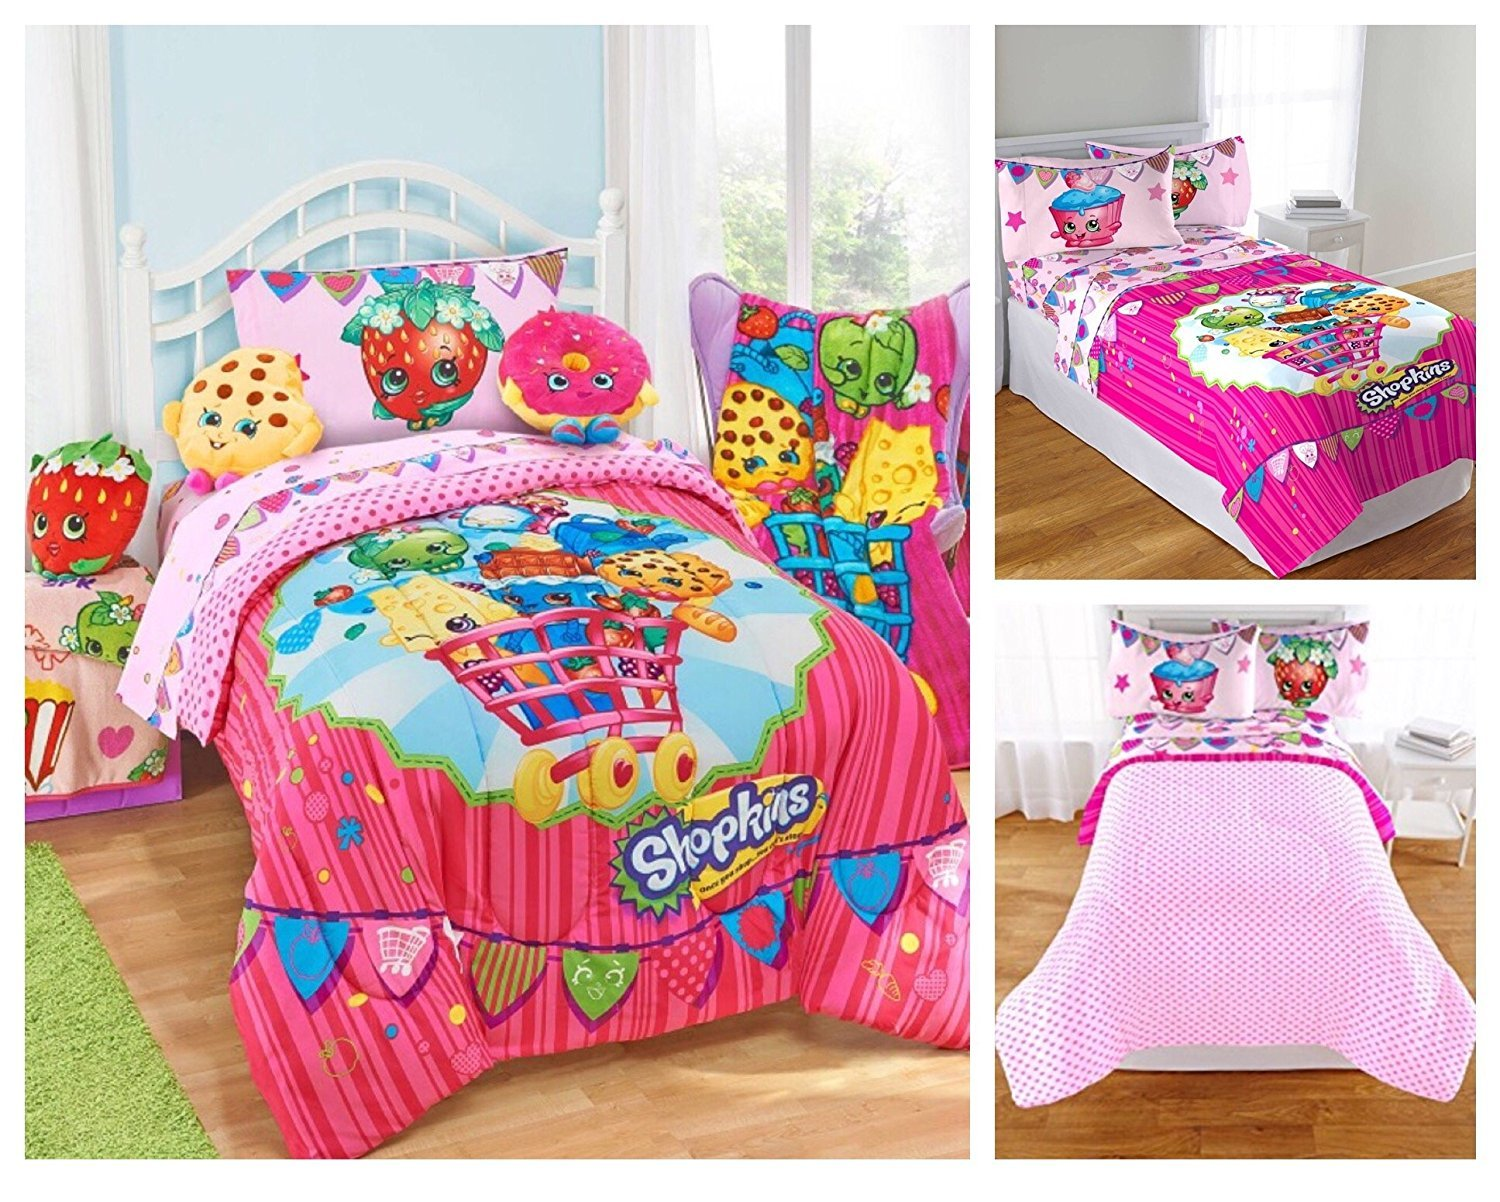 Shopkins Kids 5 Piece Bed in a Bag Full Size Bedding Set Microfiber Sheets /& Pillow Cases Reversible Comforter